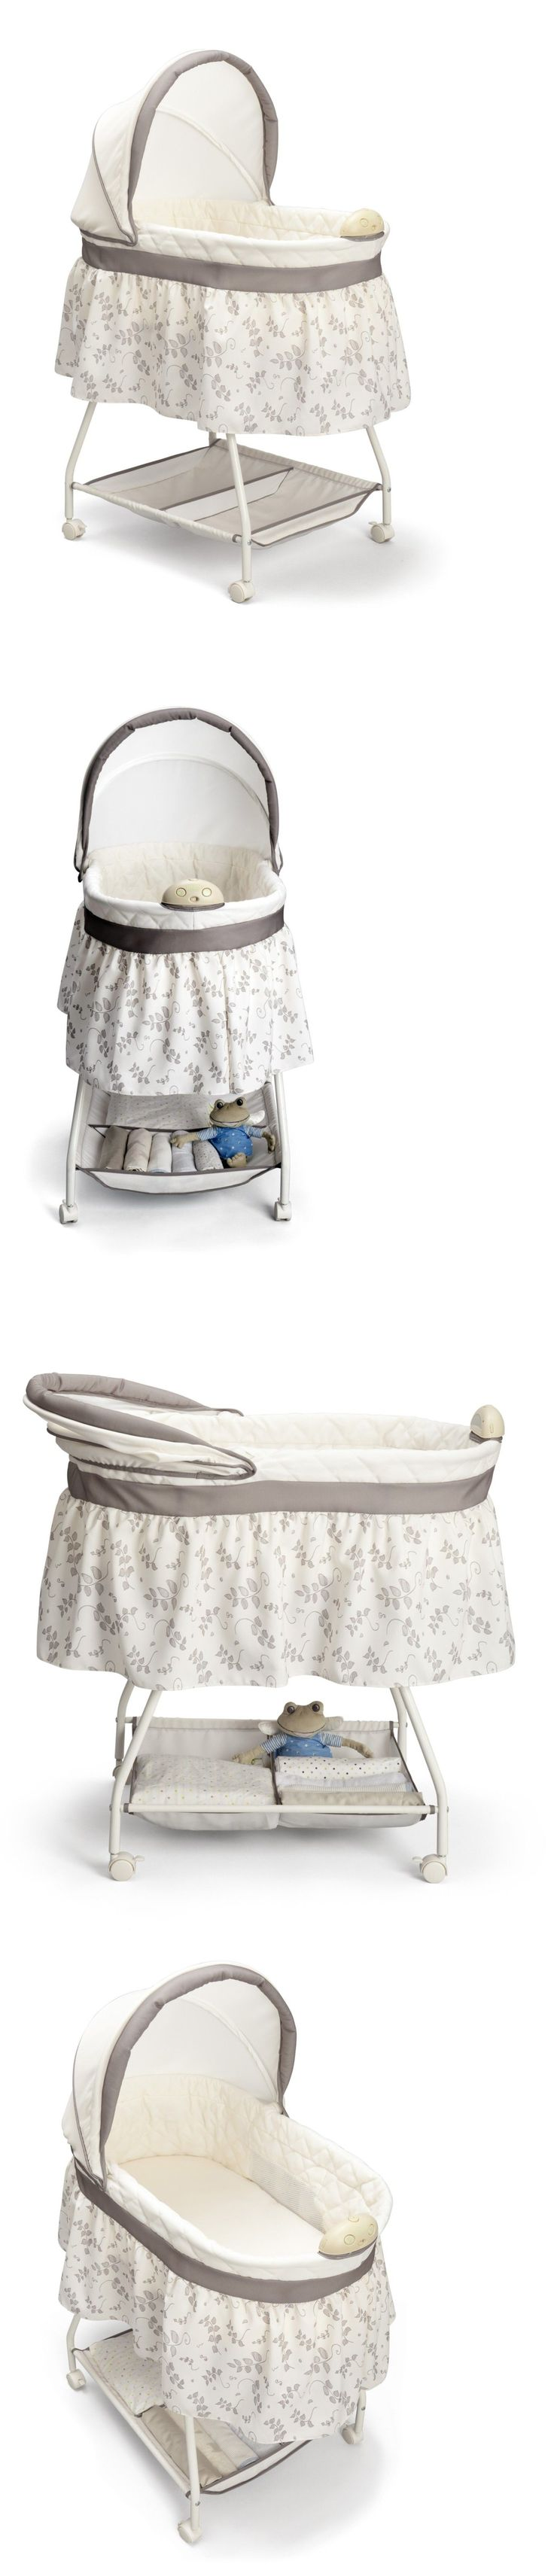 Bassinets and Cradles 20423: Reborn Baby Crib Bedside Bassinet Co Sleeping Bed For Stand Universal Skirt -> BUY IT NOW ONLY: $52.32 on eBay!